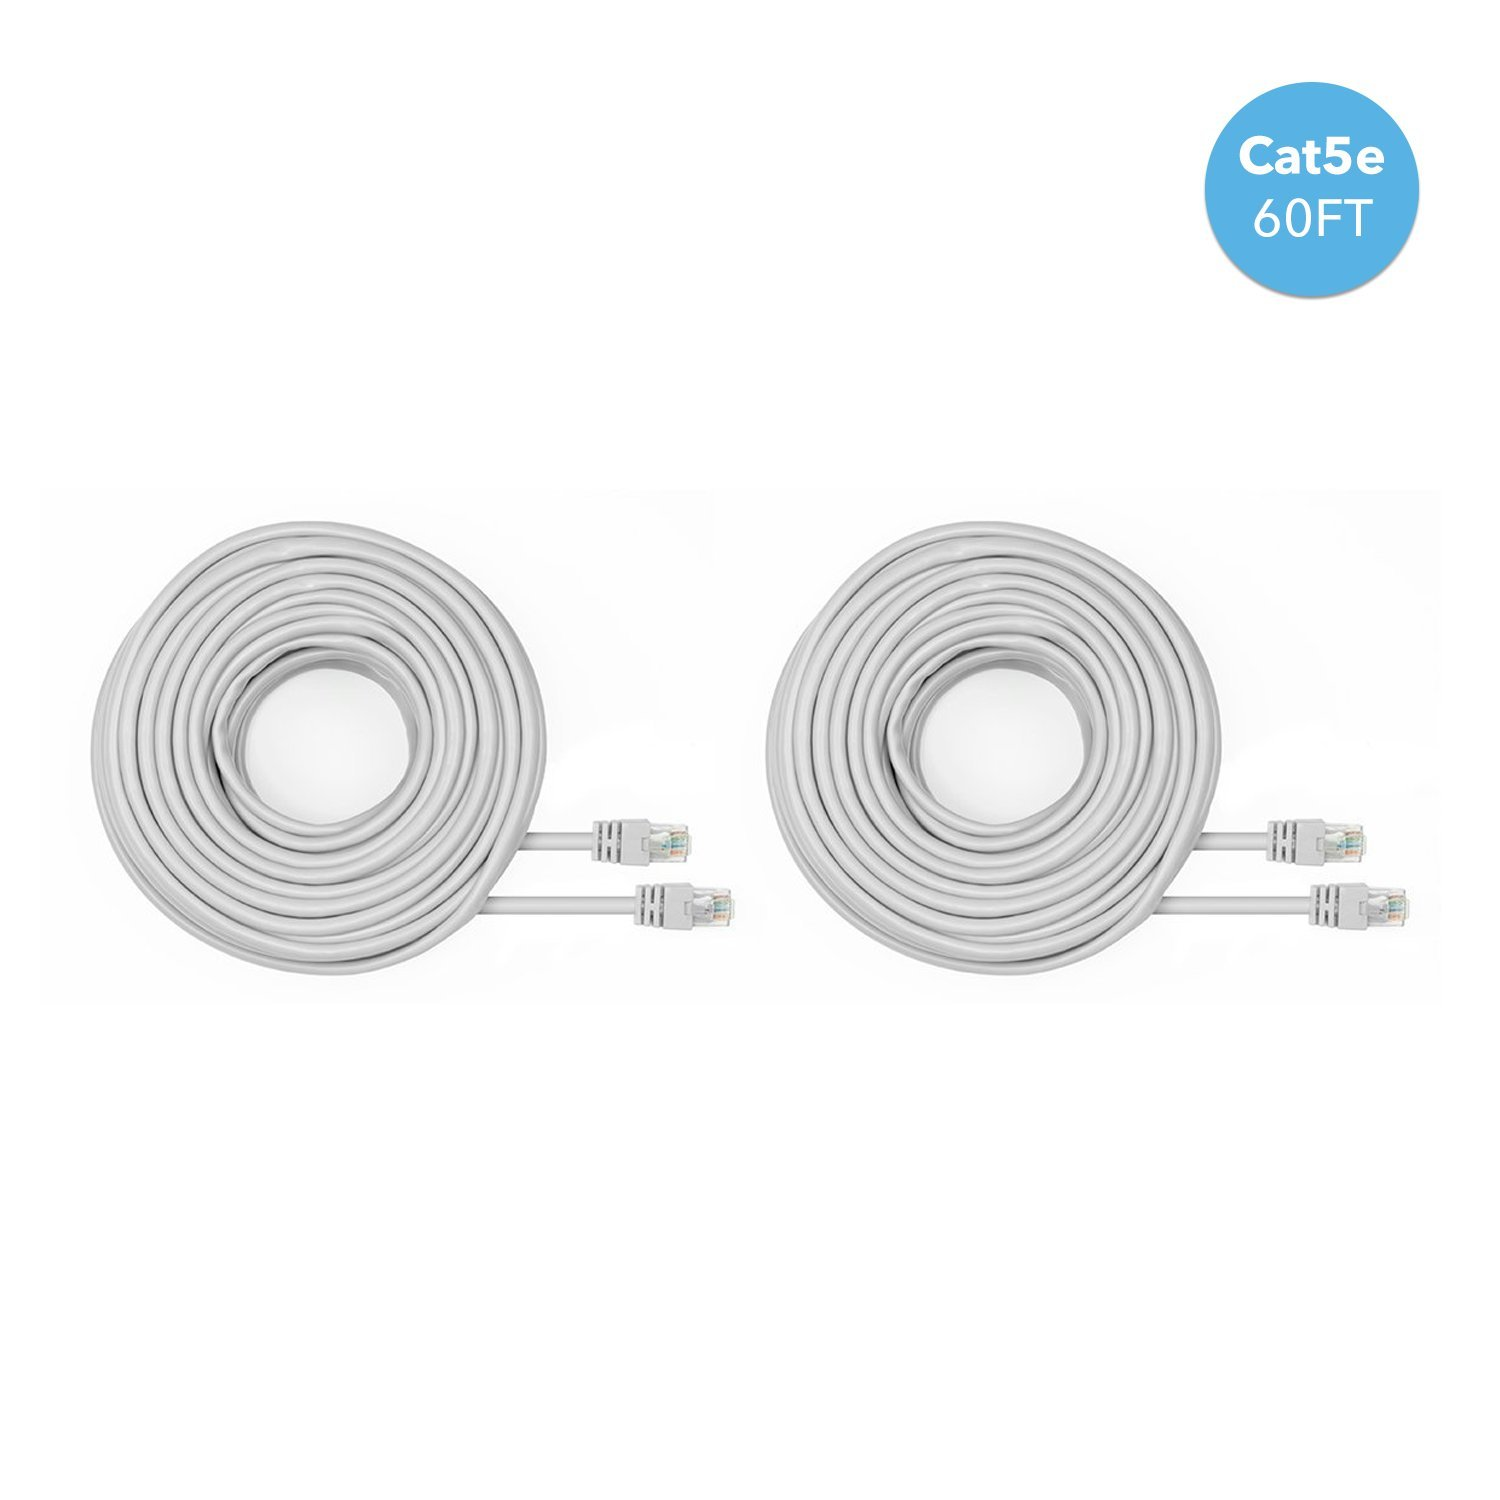 Laptop Smart TV Home Amcrest Cat5e Cable 60ft Ethernet Cable Internet High Speed Network Cable for POE Security Cameras Xbox One Computer PS4 2PACK-CAT5ECABLE60 Router